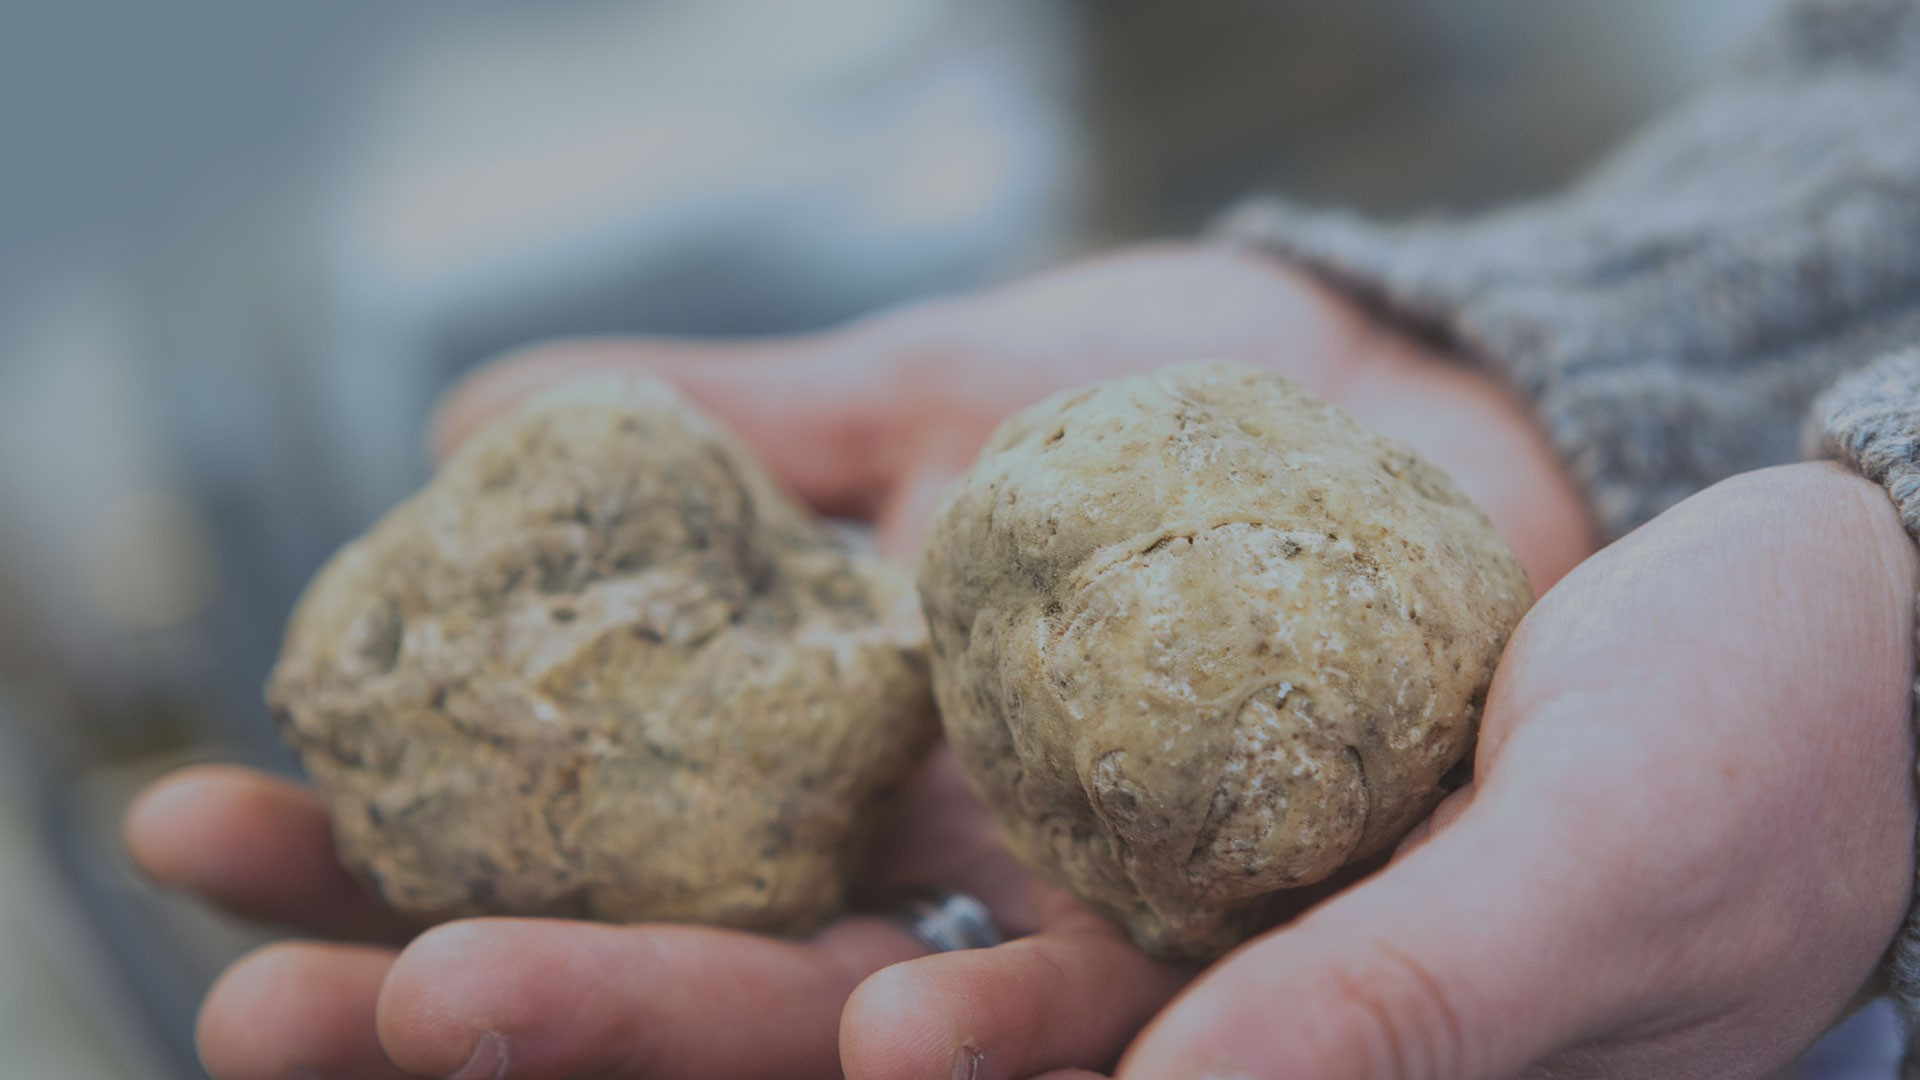 Morra Tartufi ad Alba - Online store of fresh truffles and truffle products of Alba